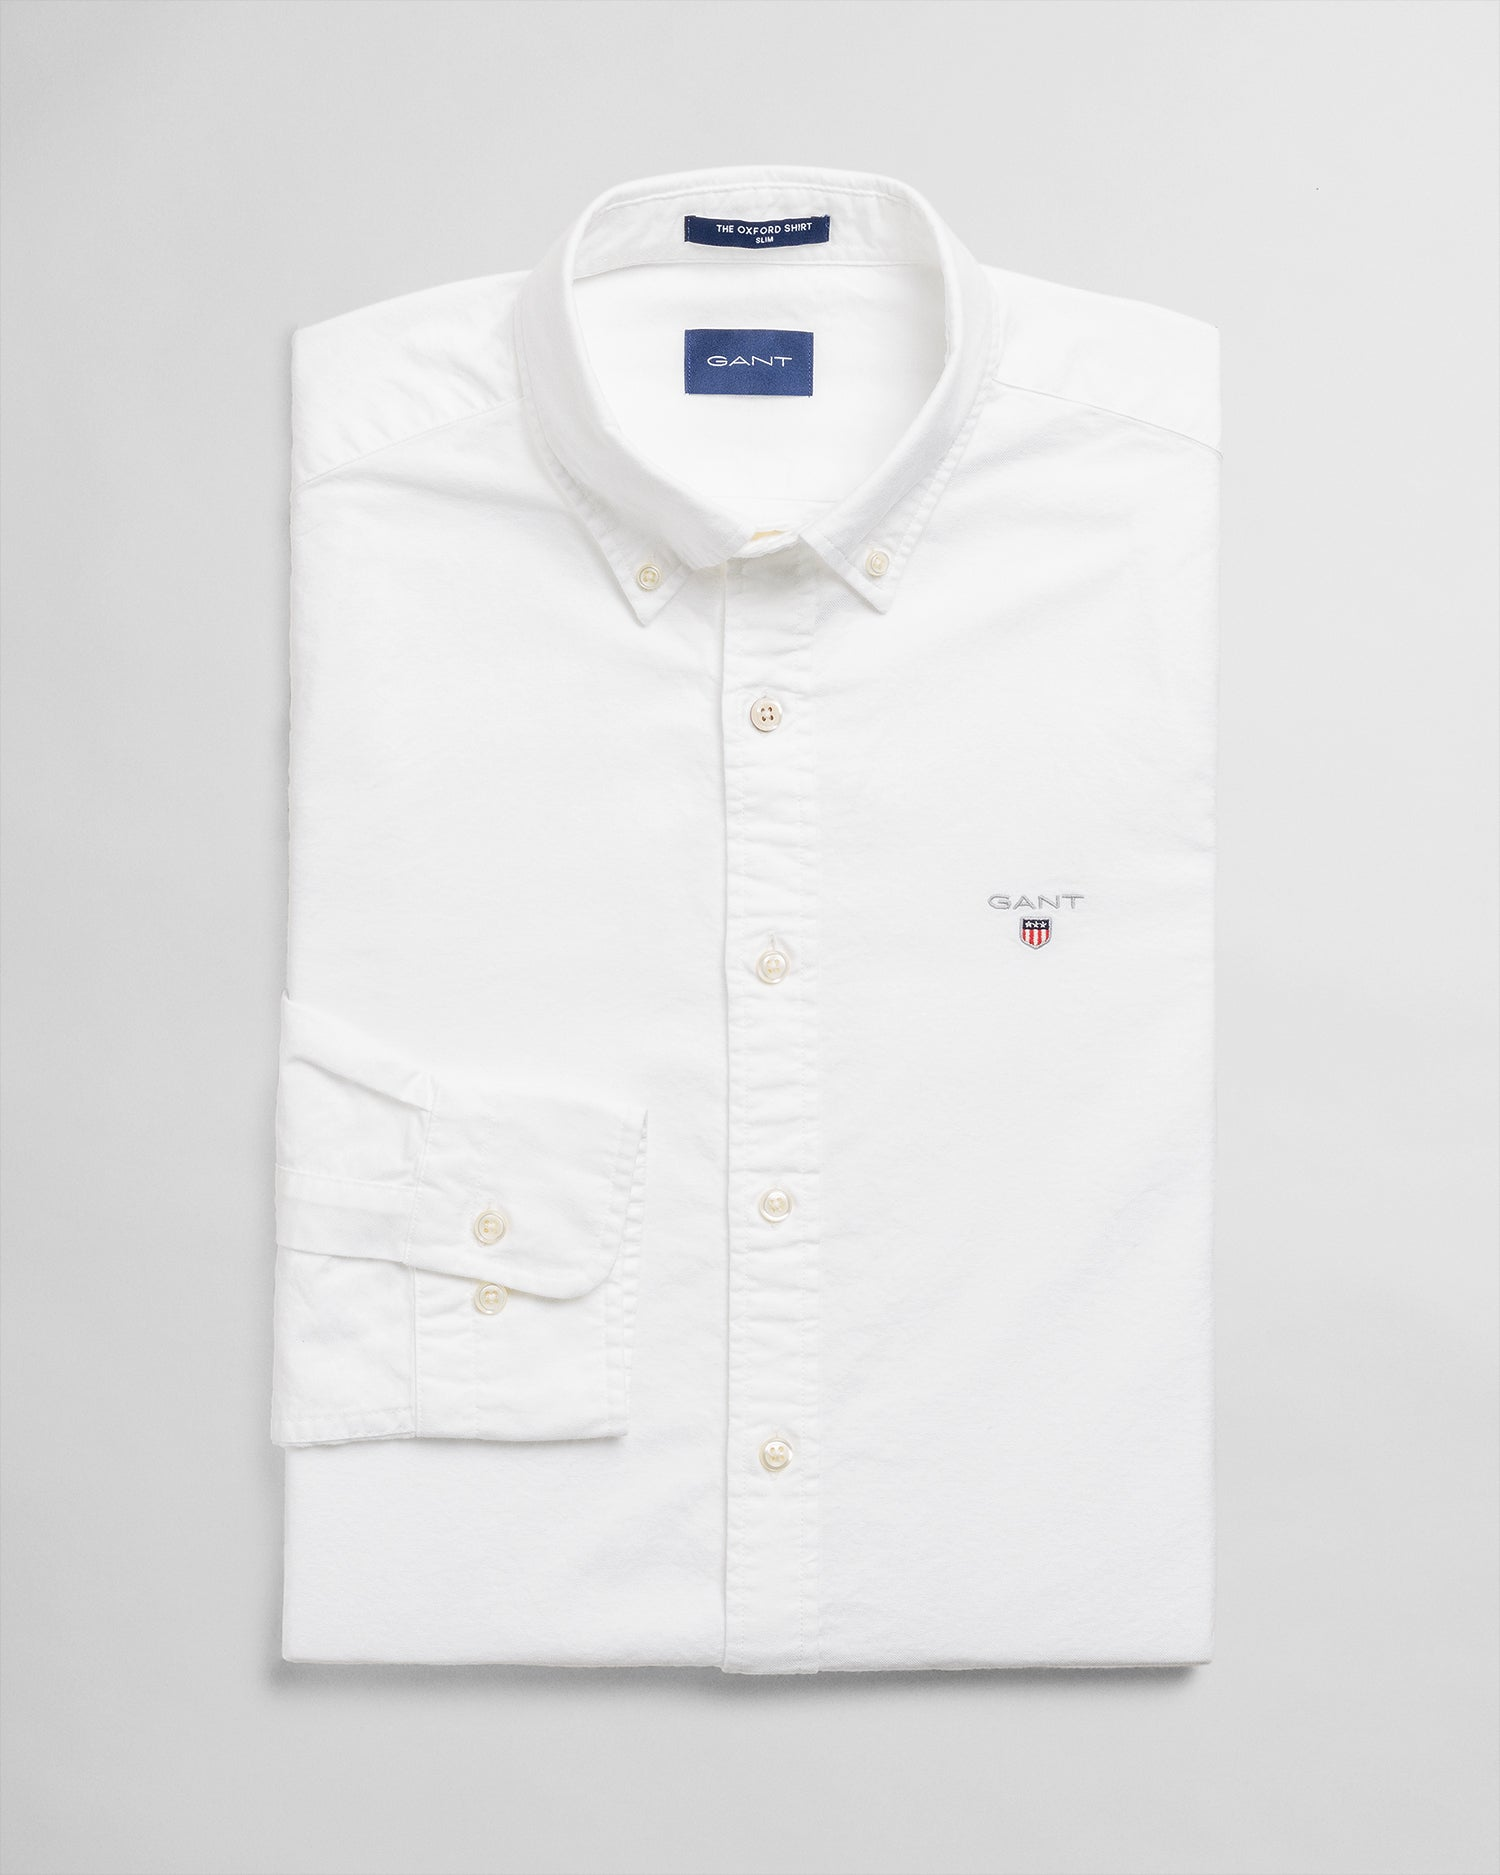 GANT Herr Oxford Skjorta Slim Fit White